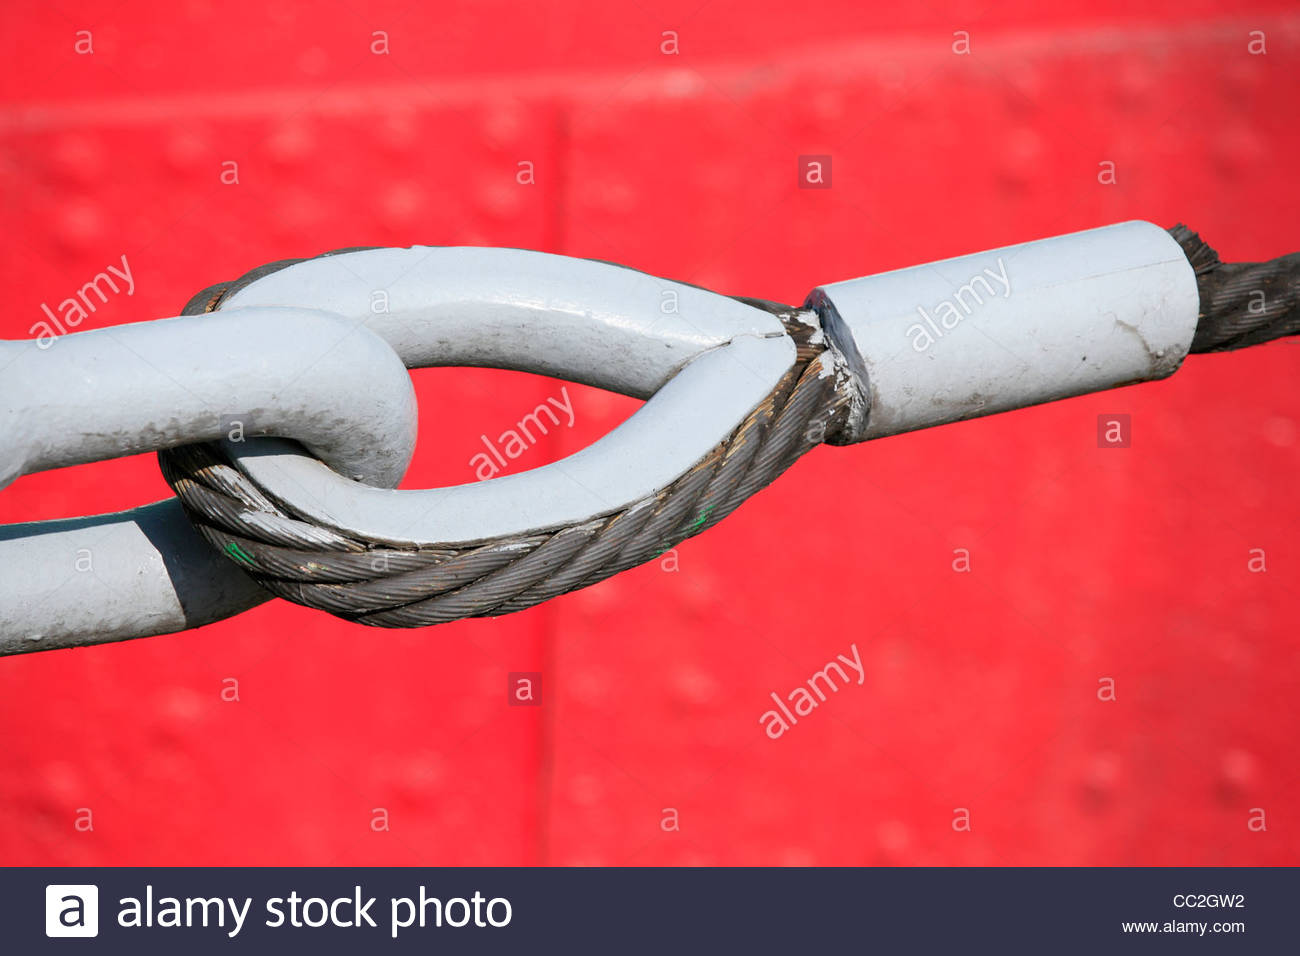 steel rope with thimble and fastener - Stock Image